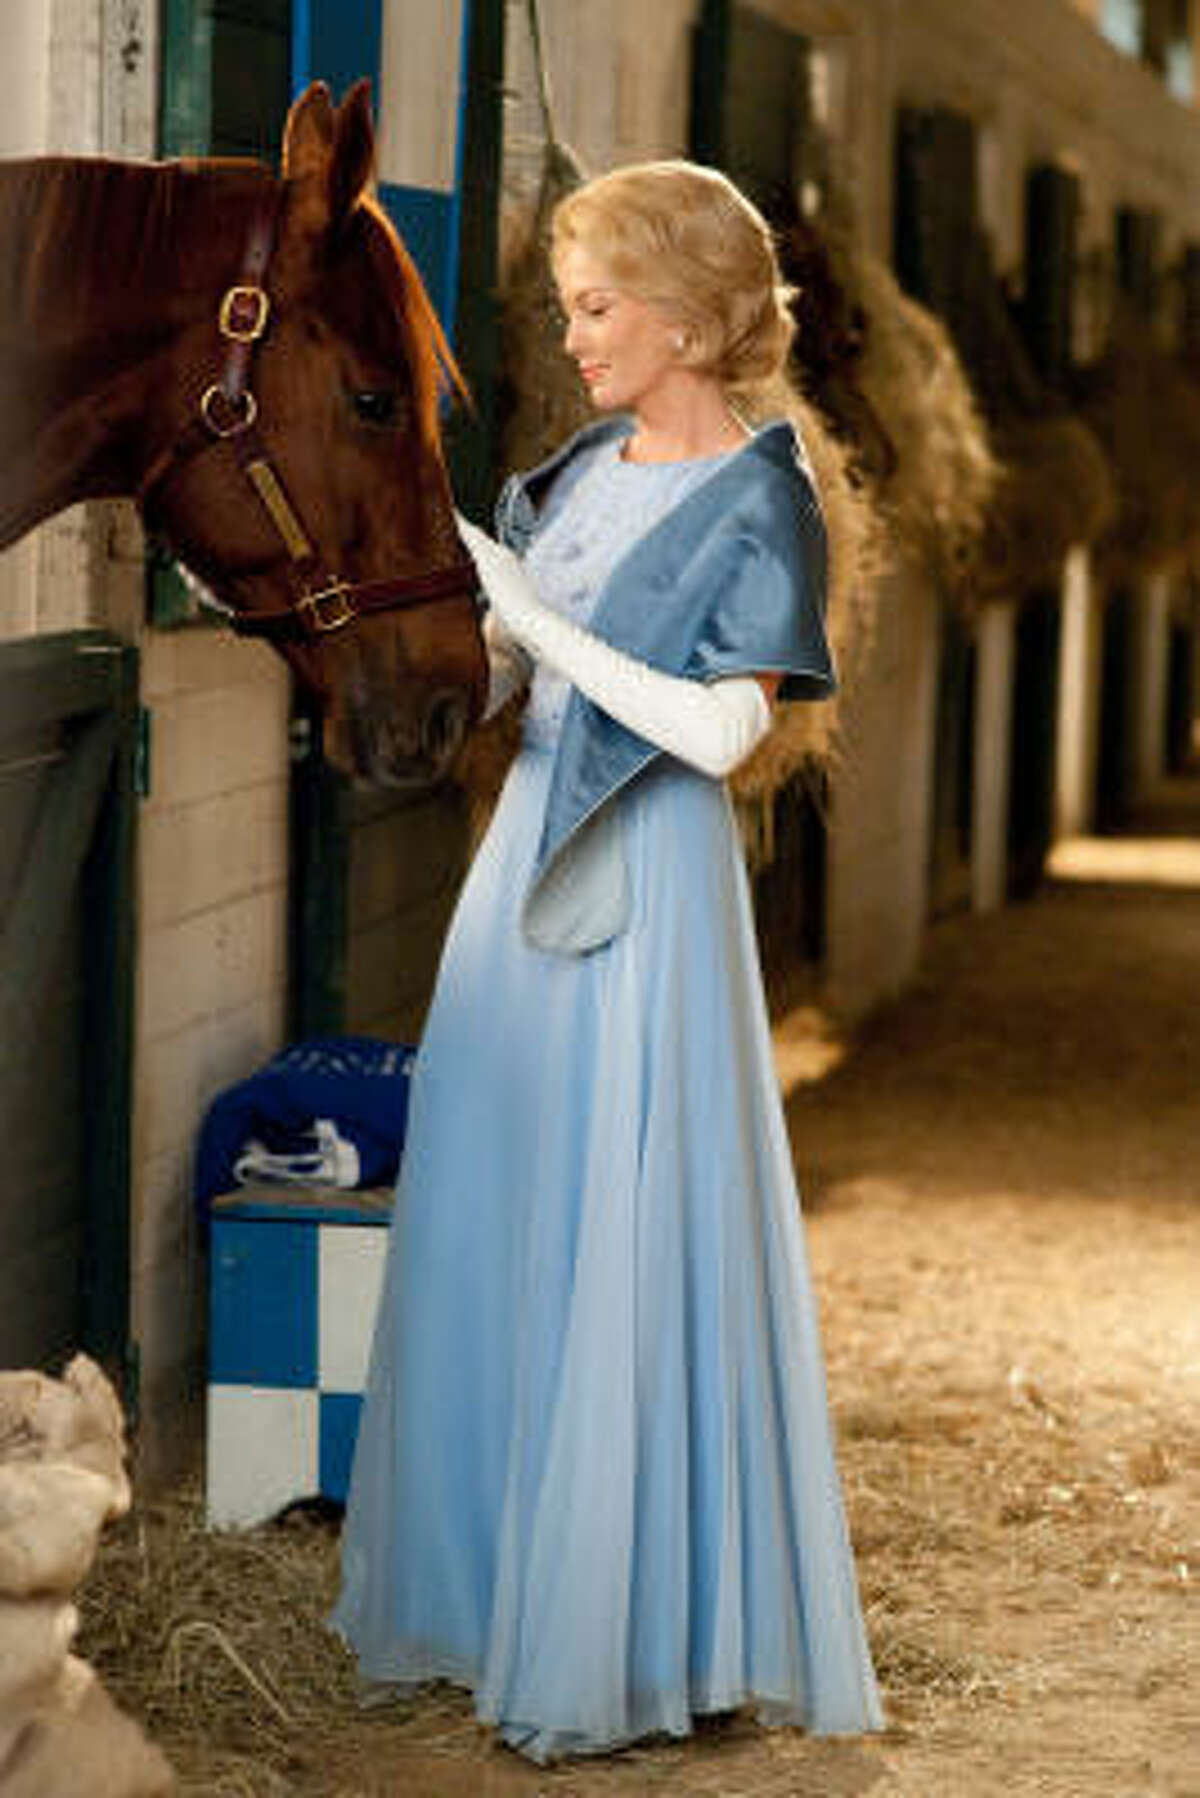 Secretariat , $4 million: A female stable owner (Diane Lane) battles her way into the male-dominated horseracing industry and eventually fosters a Triple Crown winner.